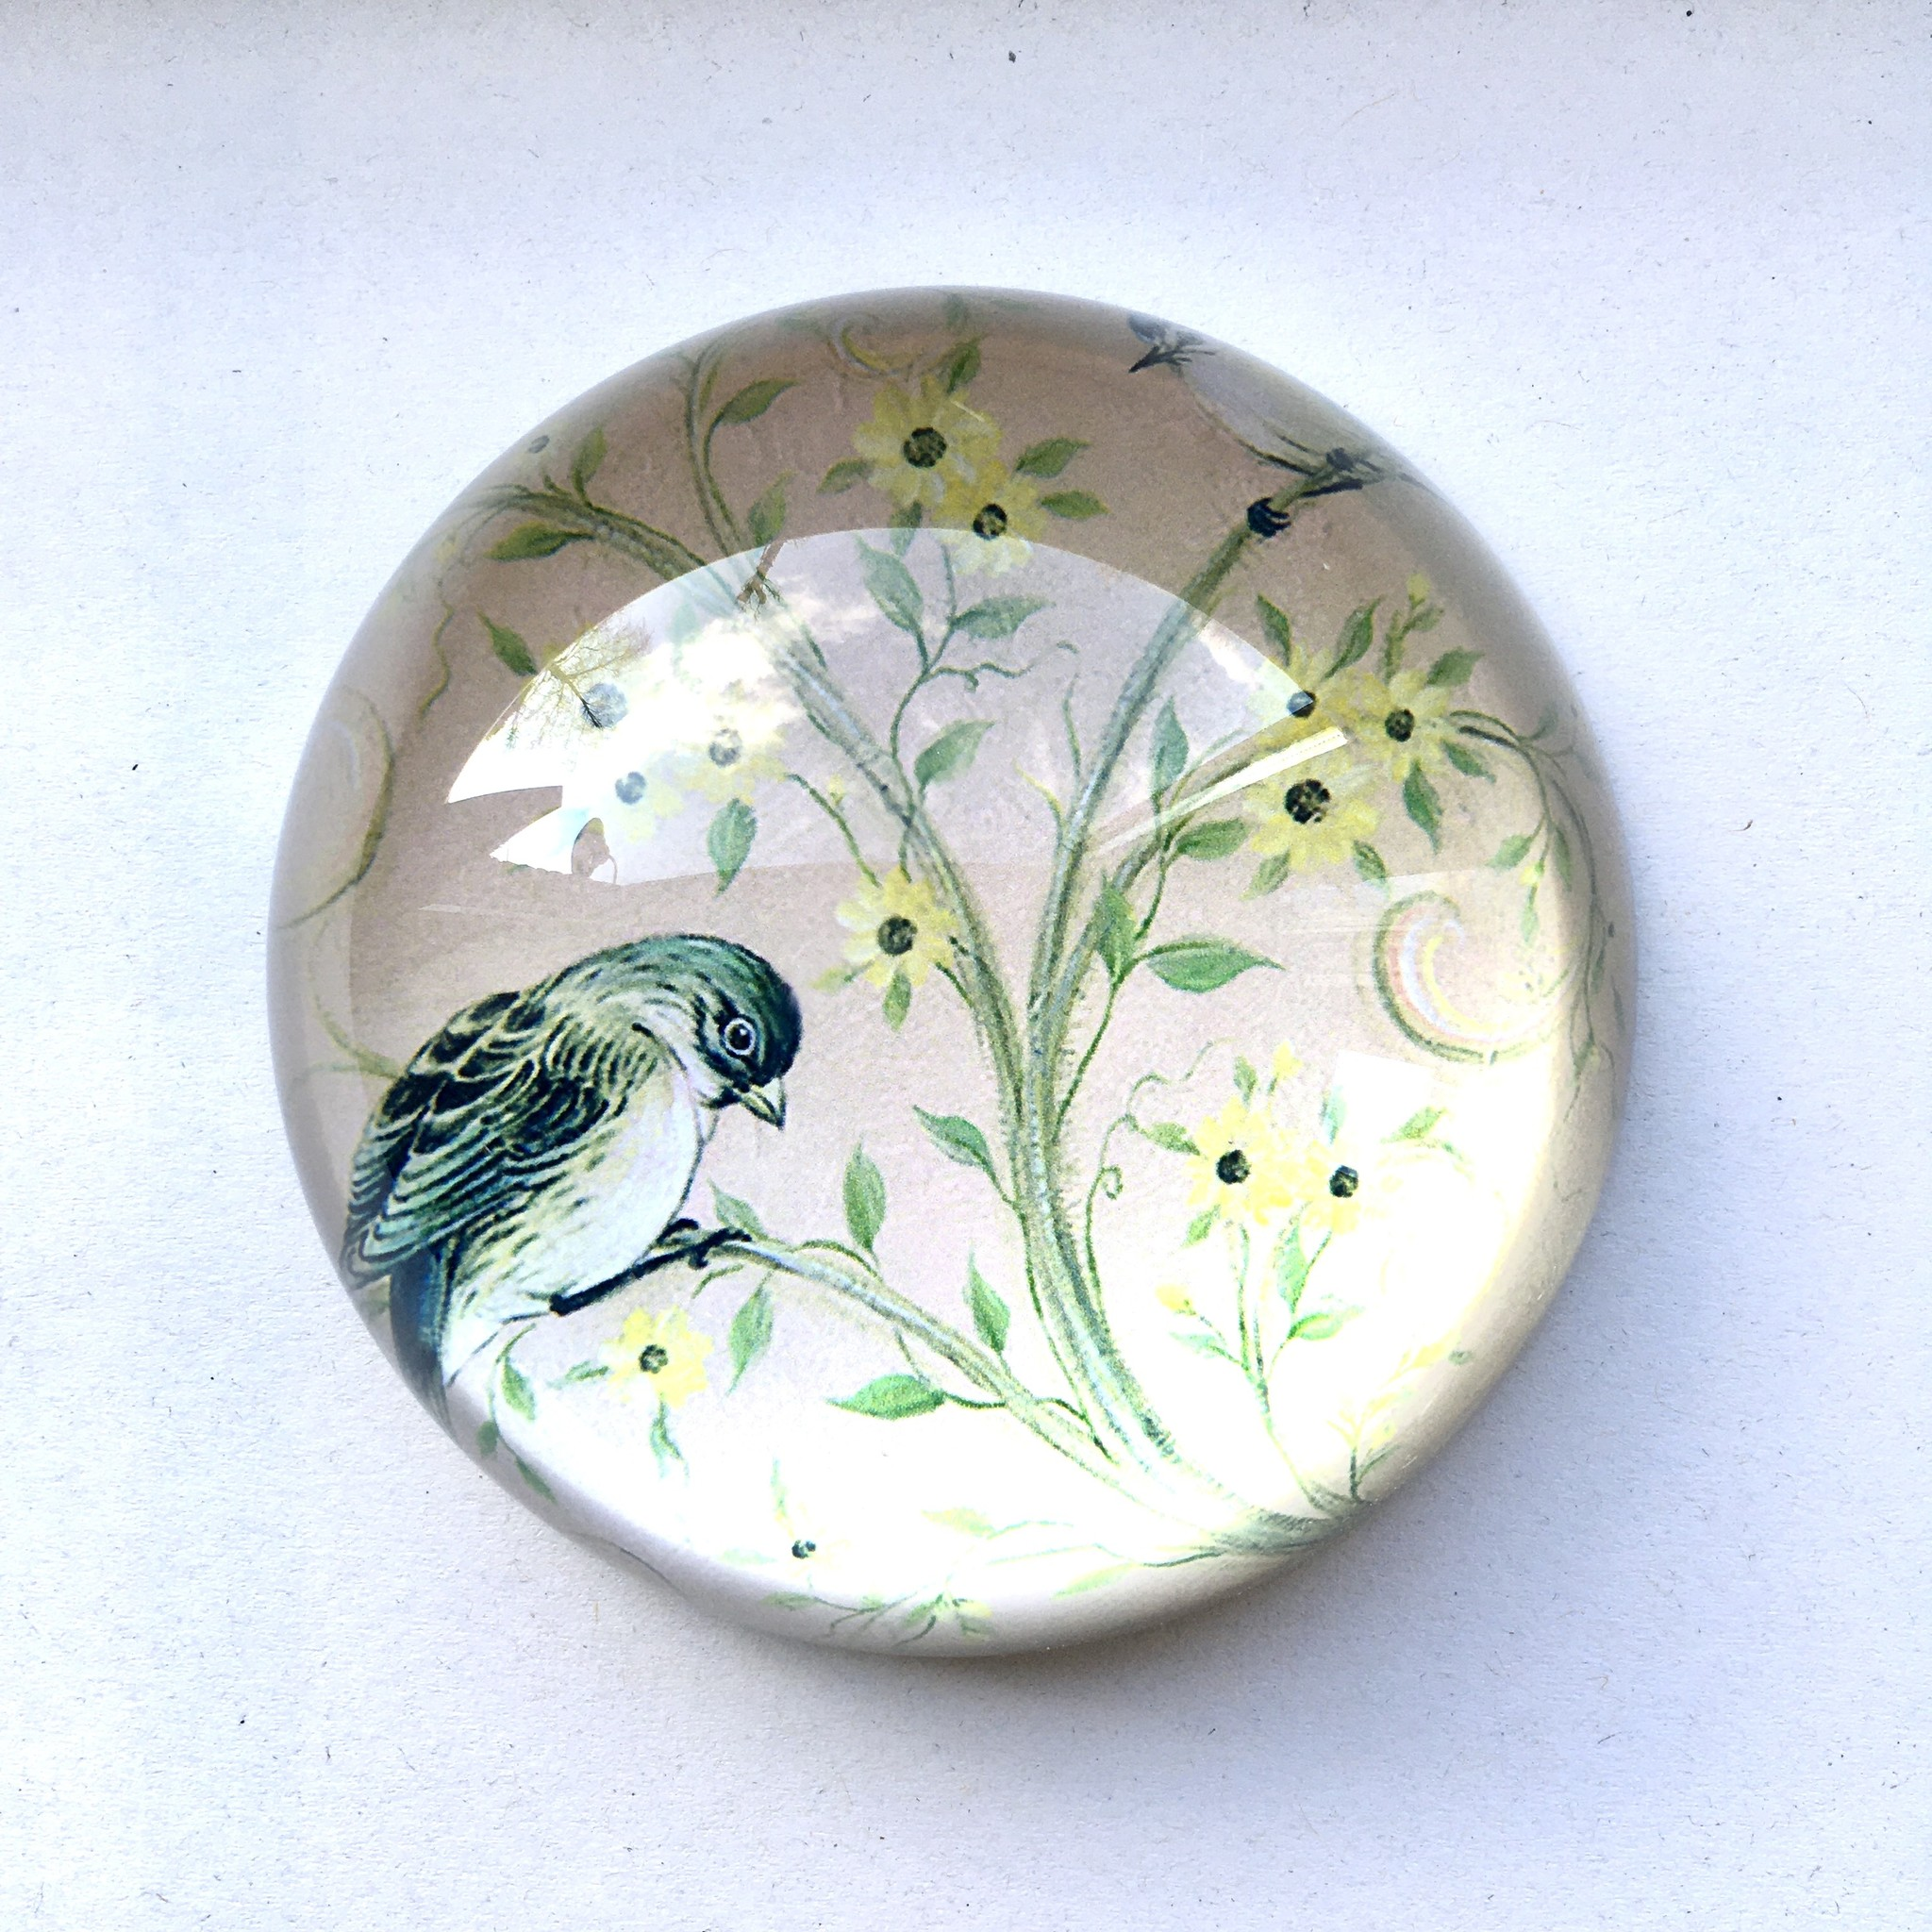 Meander Paperweight with bird